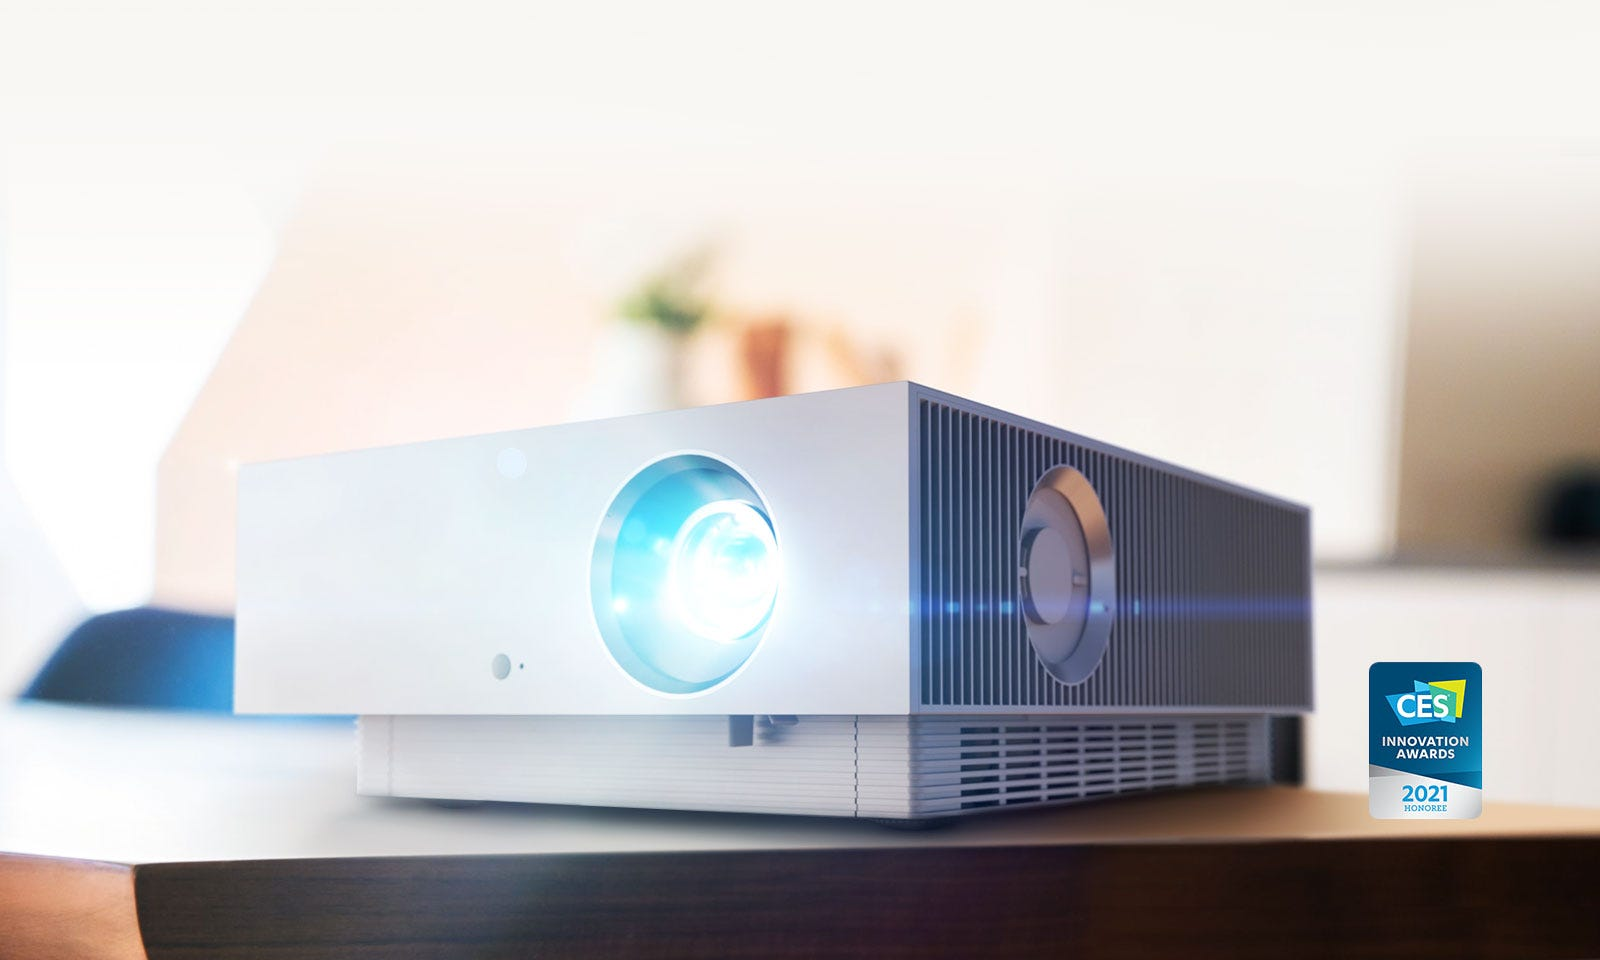 LG's New 4k CineBeam Projector Automatically Adjusts for Dark and Bright Rooms